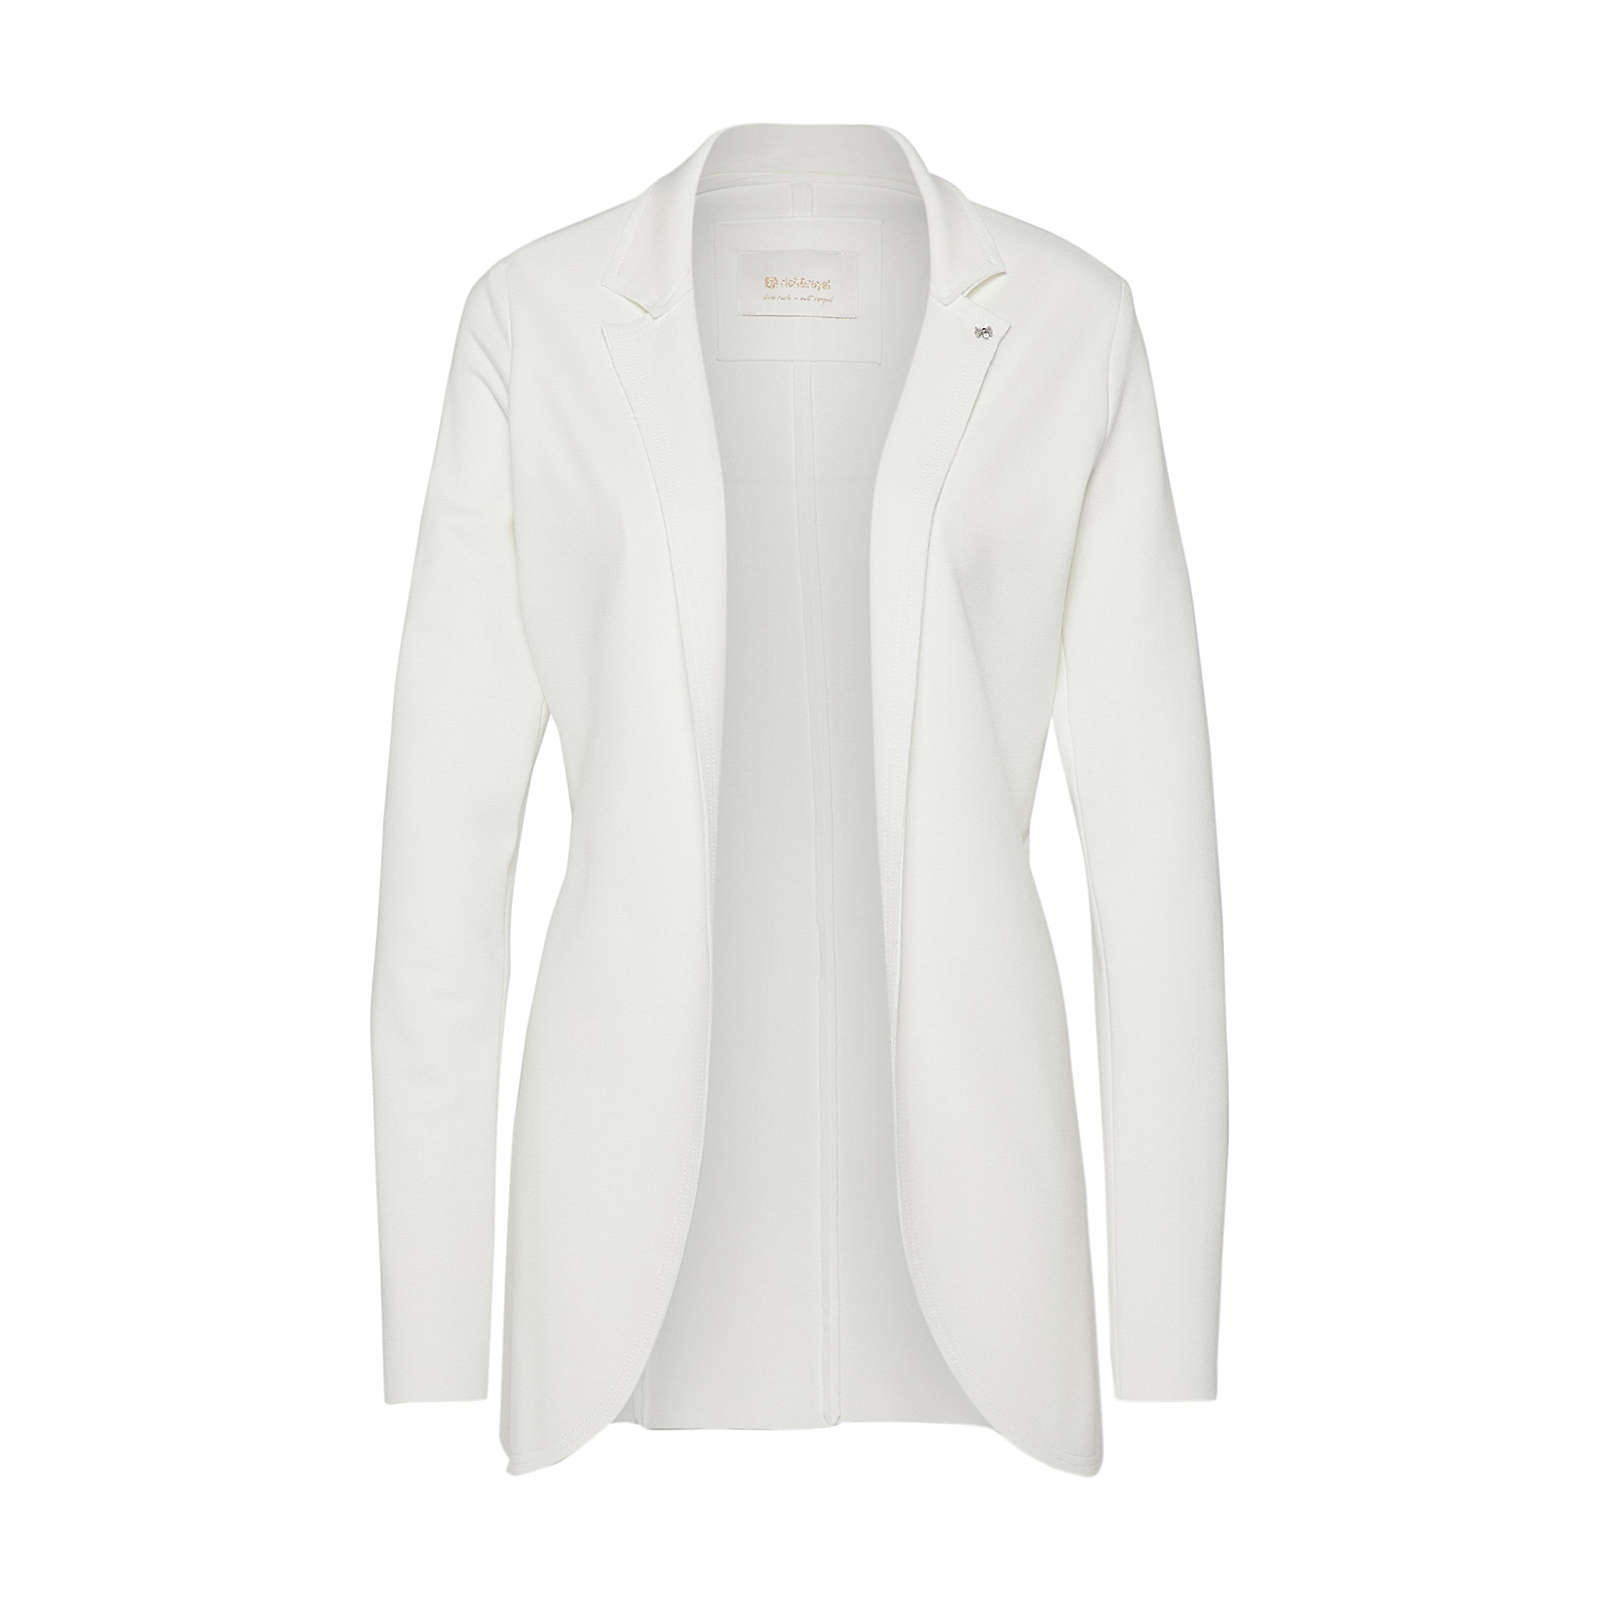 rich&royal Rich & Royal Blazer Sweatblazer offwhite Damen Gr. 42